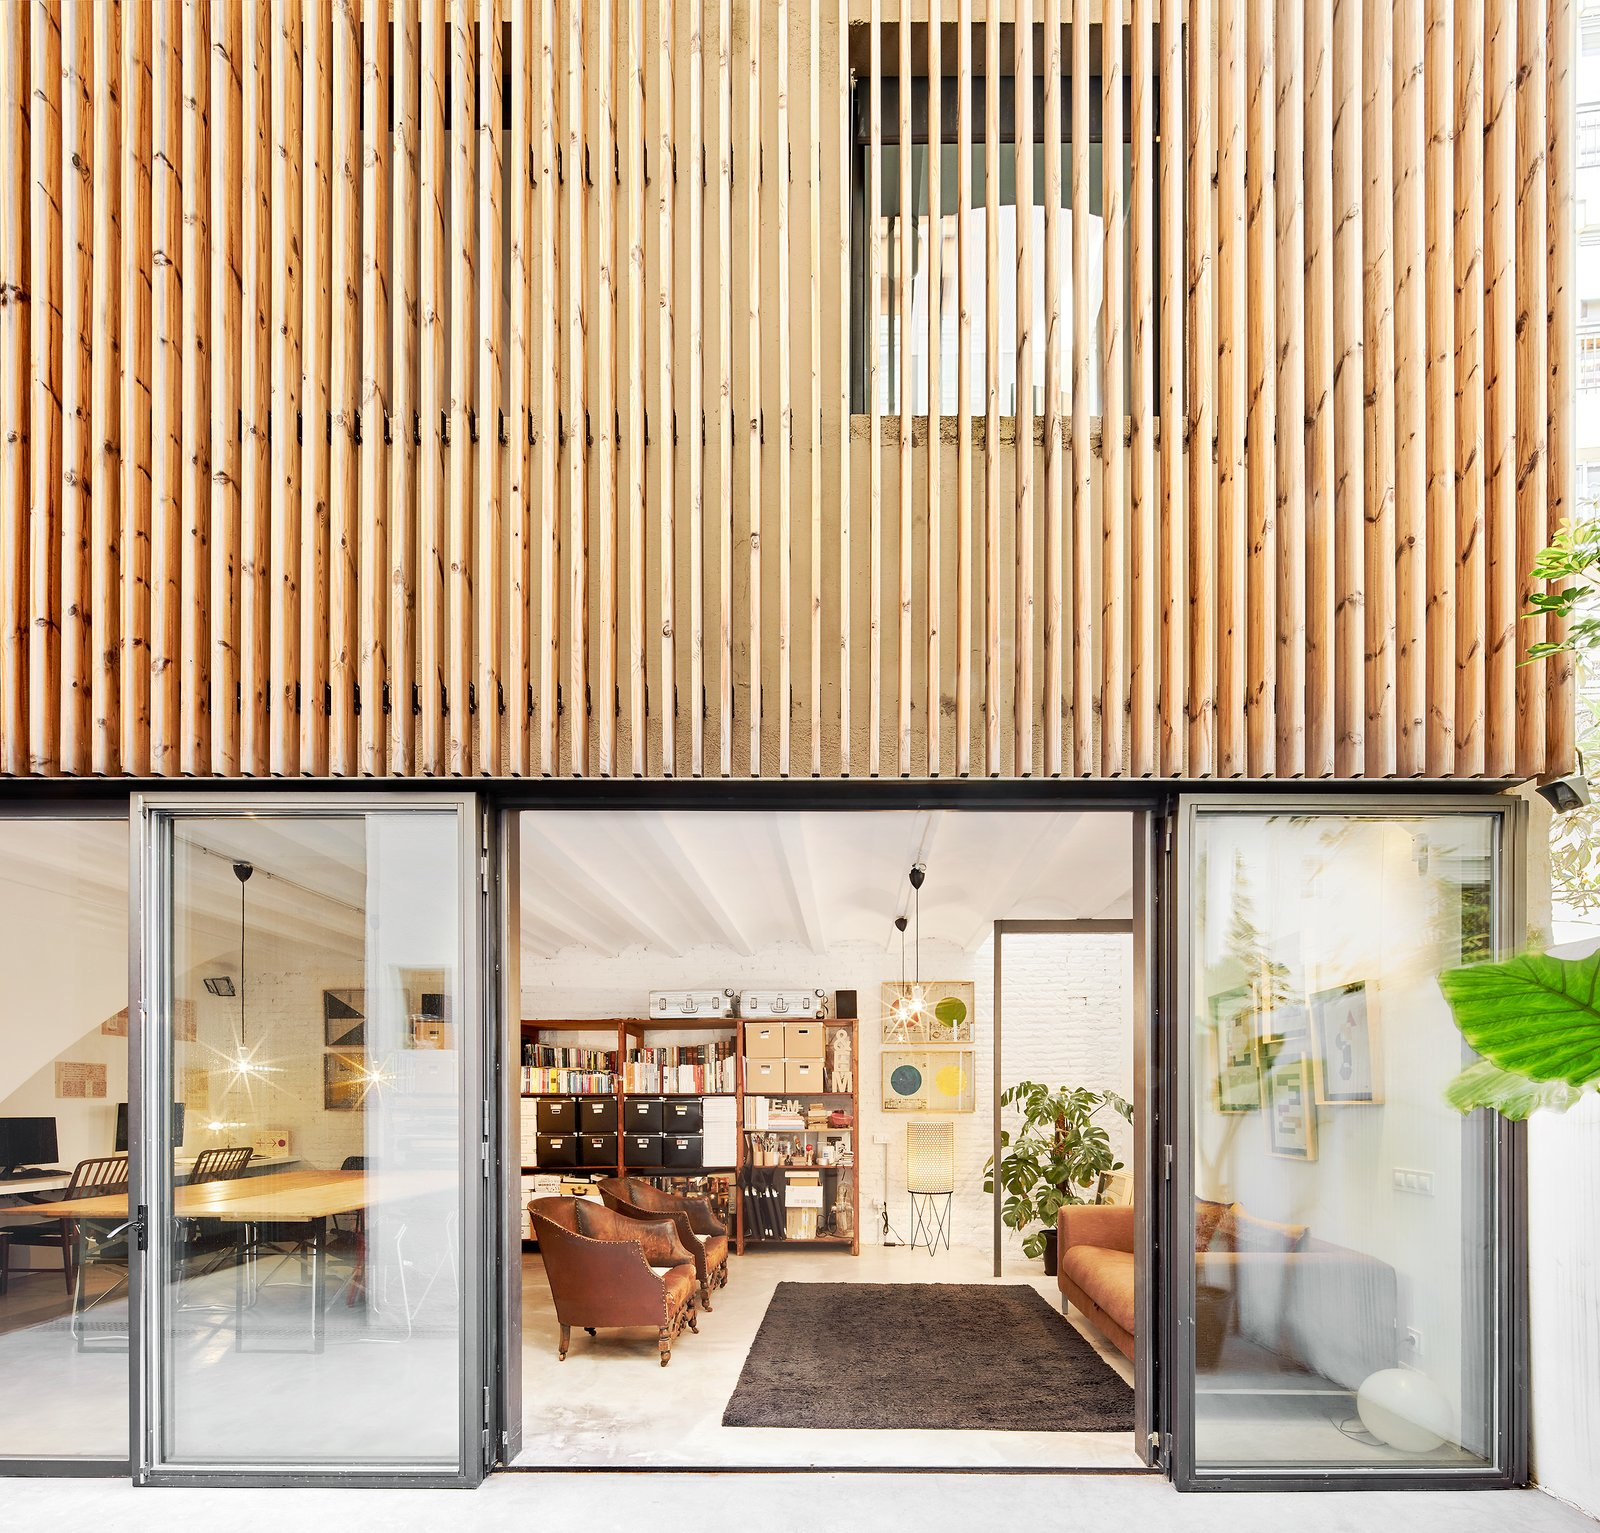 Conversion of a ground-floor publisher's warehouse into a residence and atelier for an artist-architect couple